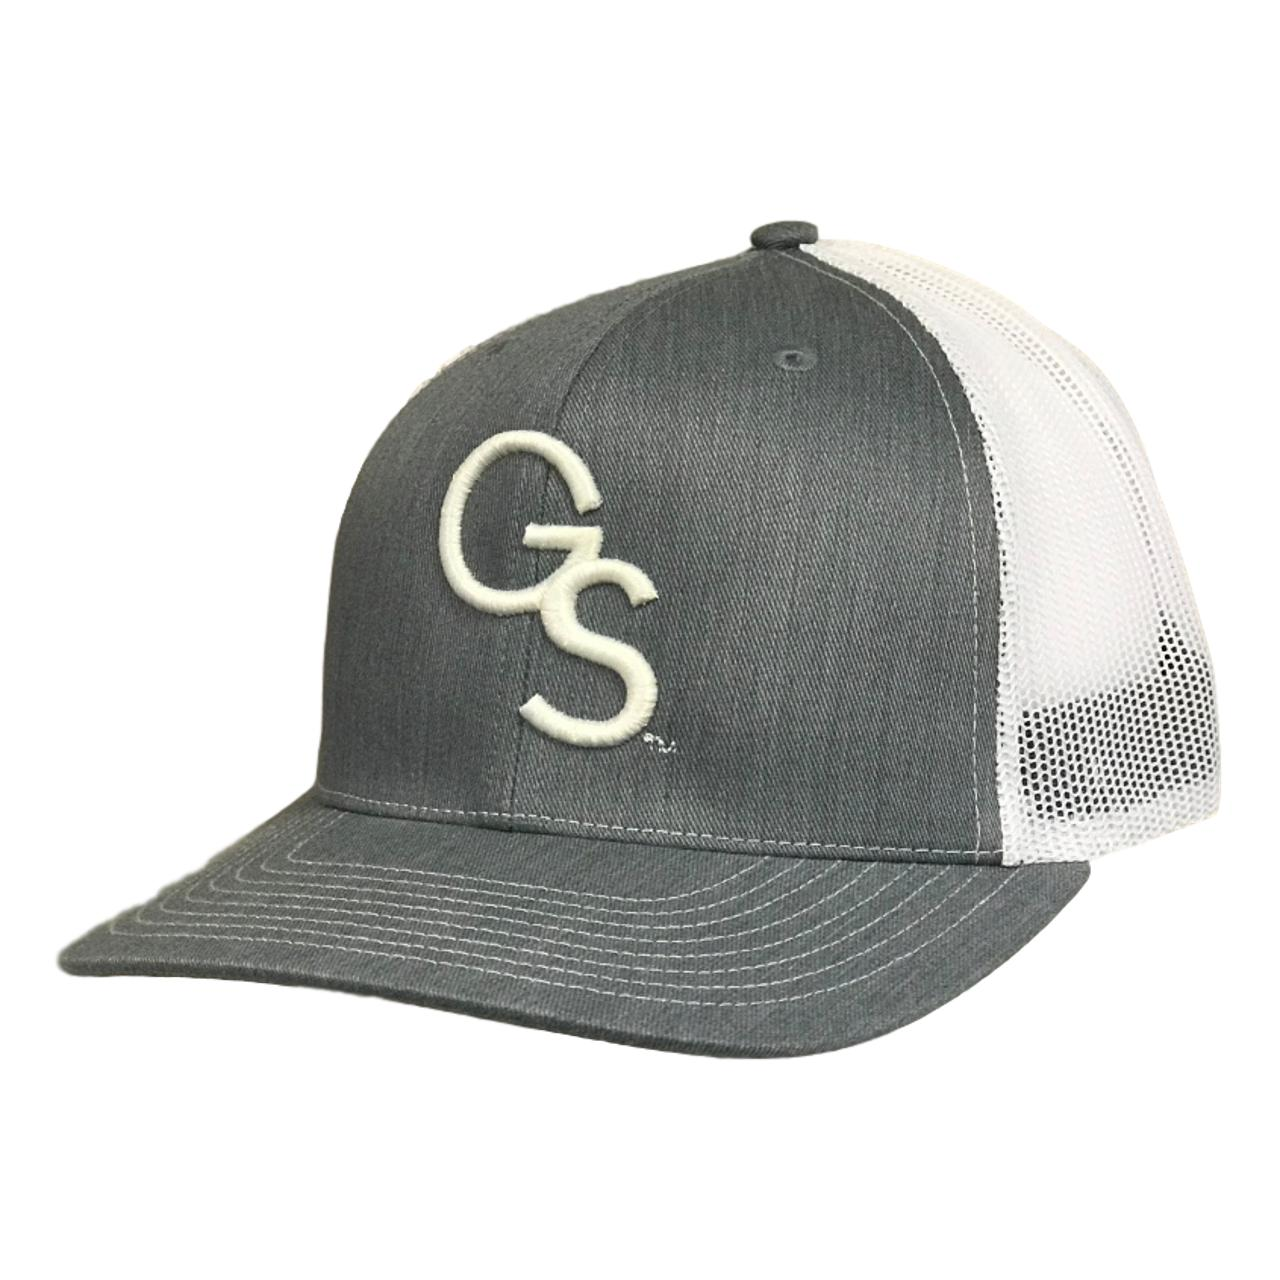 Heather Grey Trucker Hat with White GS